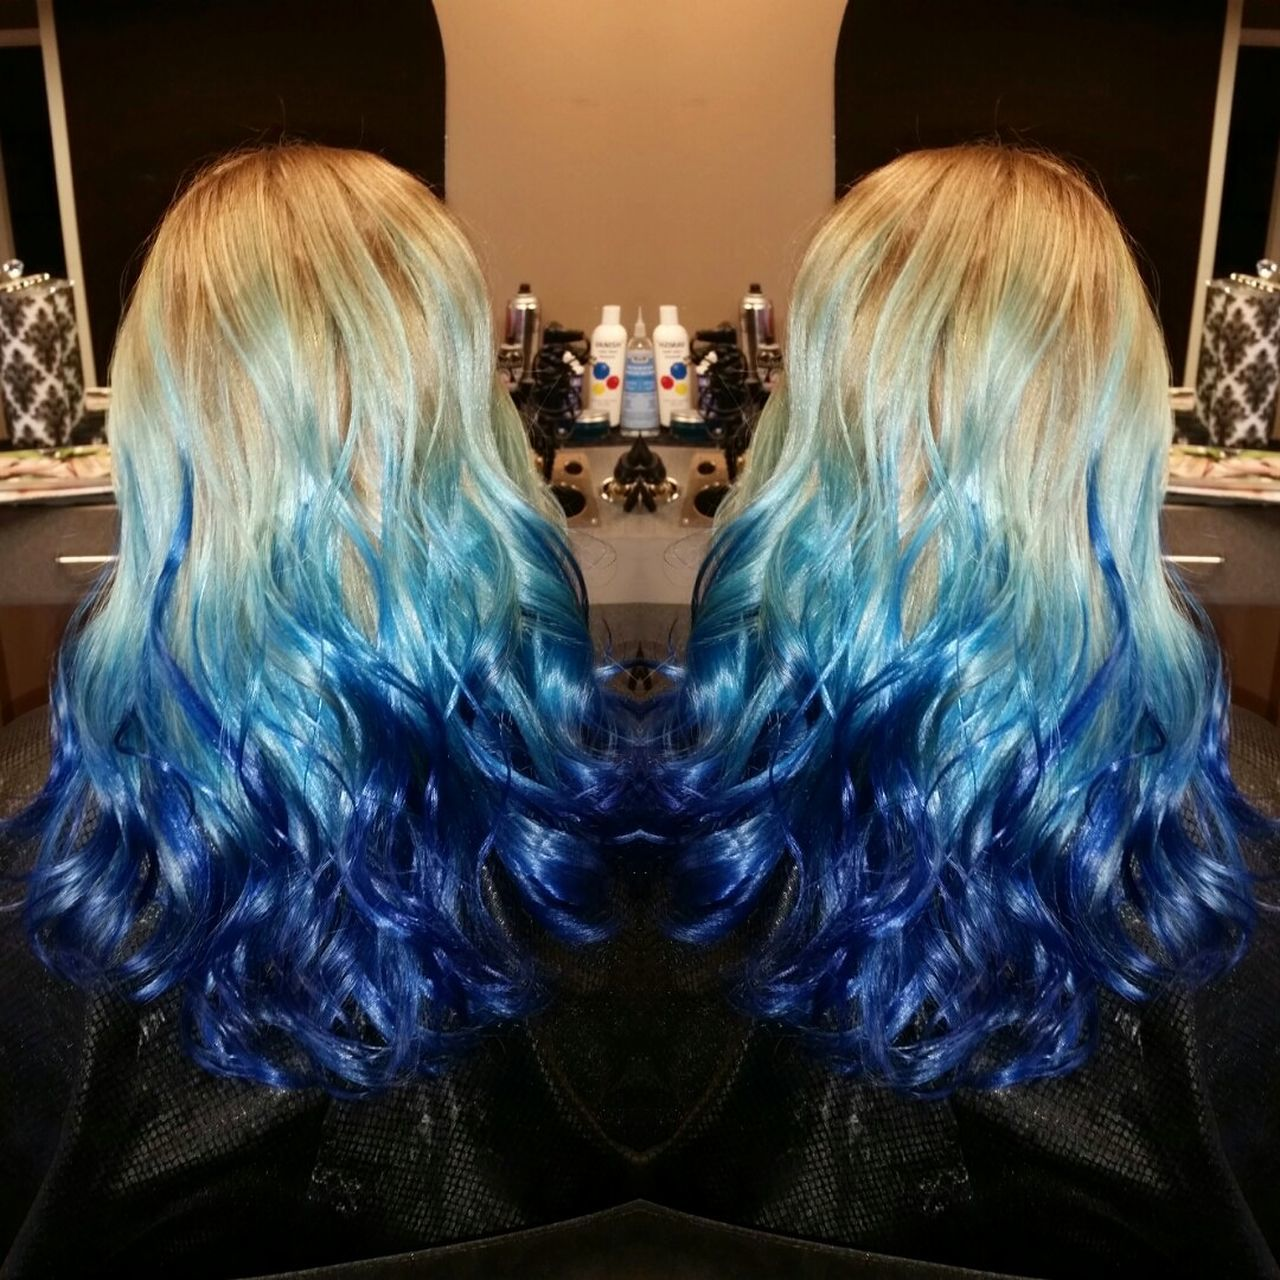 Ocean inspired hair goals from two weeks ago by yours truly. Dreamy! Hairstylist Hairdresser BlueHair Mermaidhair Hairgoals Beauty EyeEmNewHere Oceanographic One Person Futuristic Adults Only Indoors  People Adult Day